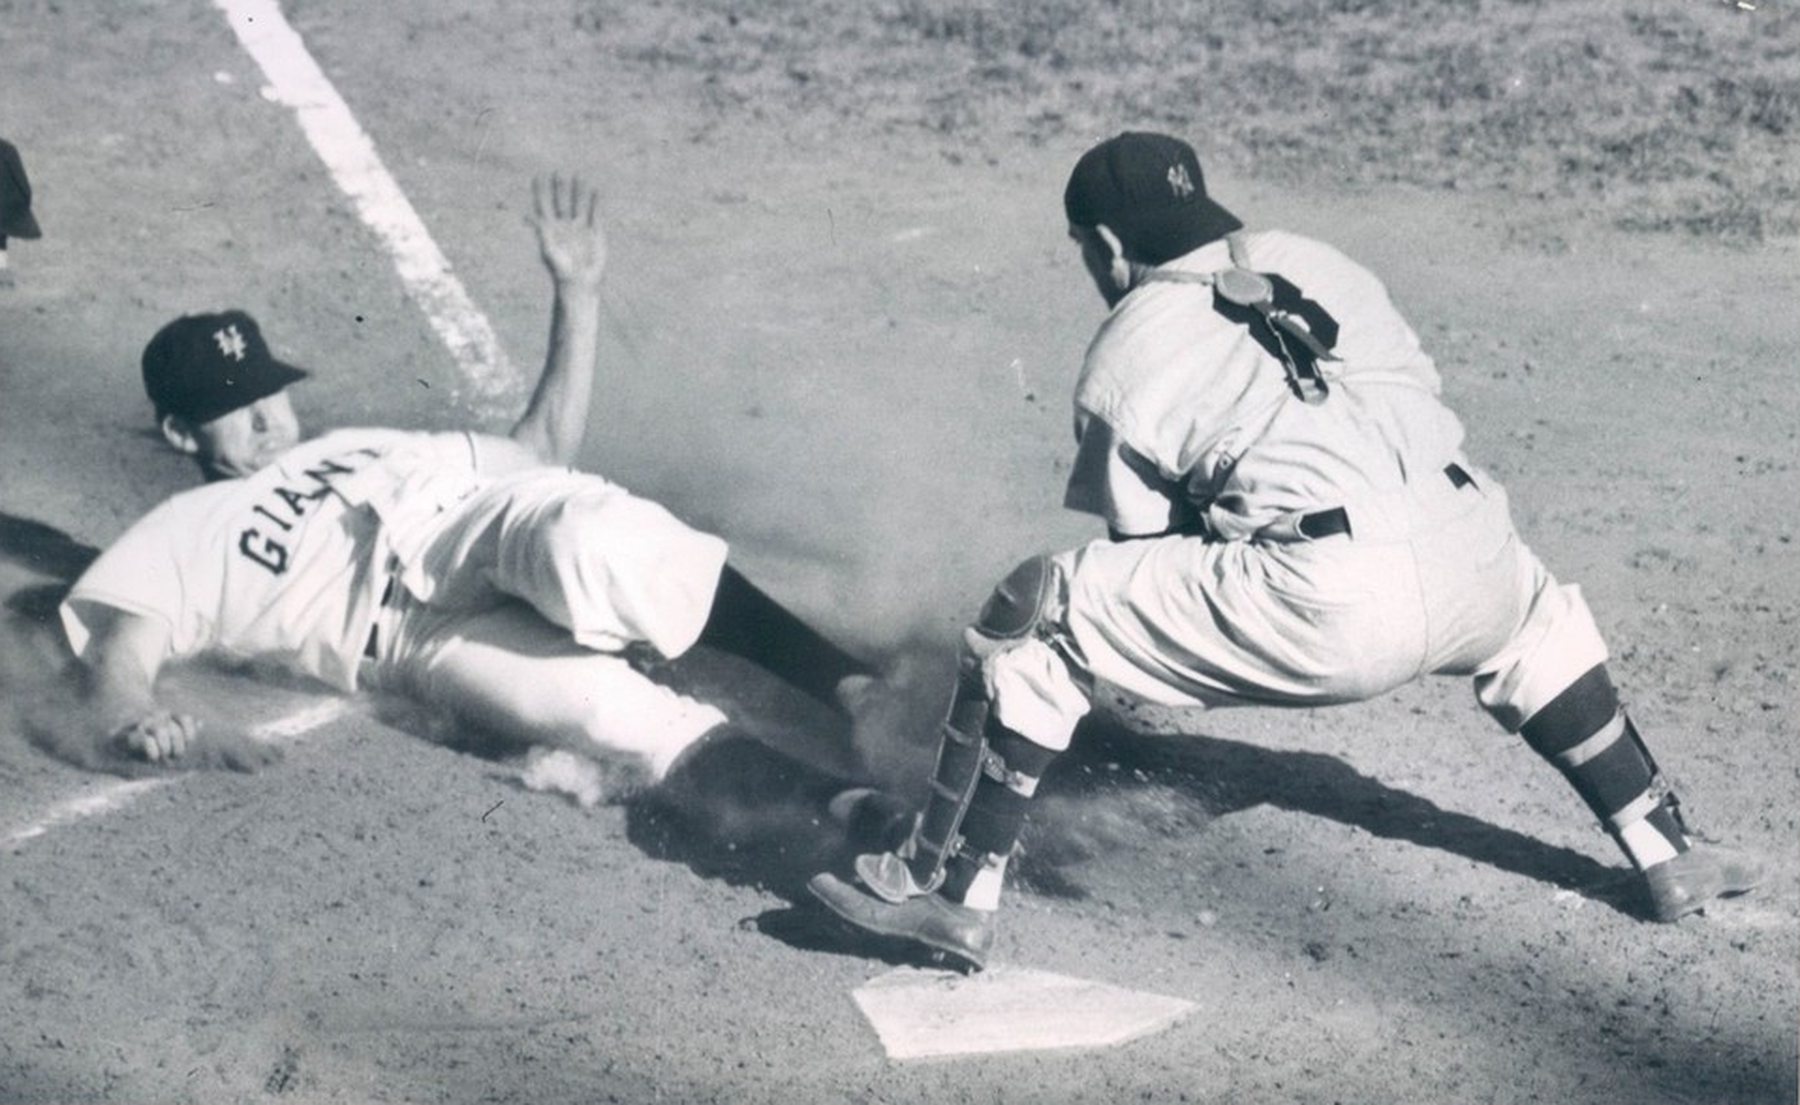 2 1962 world series - giants vs yankees - world series rematches